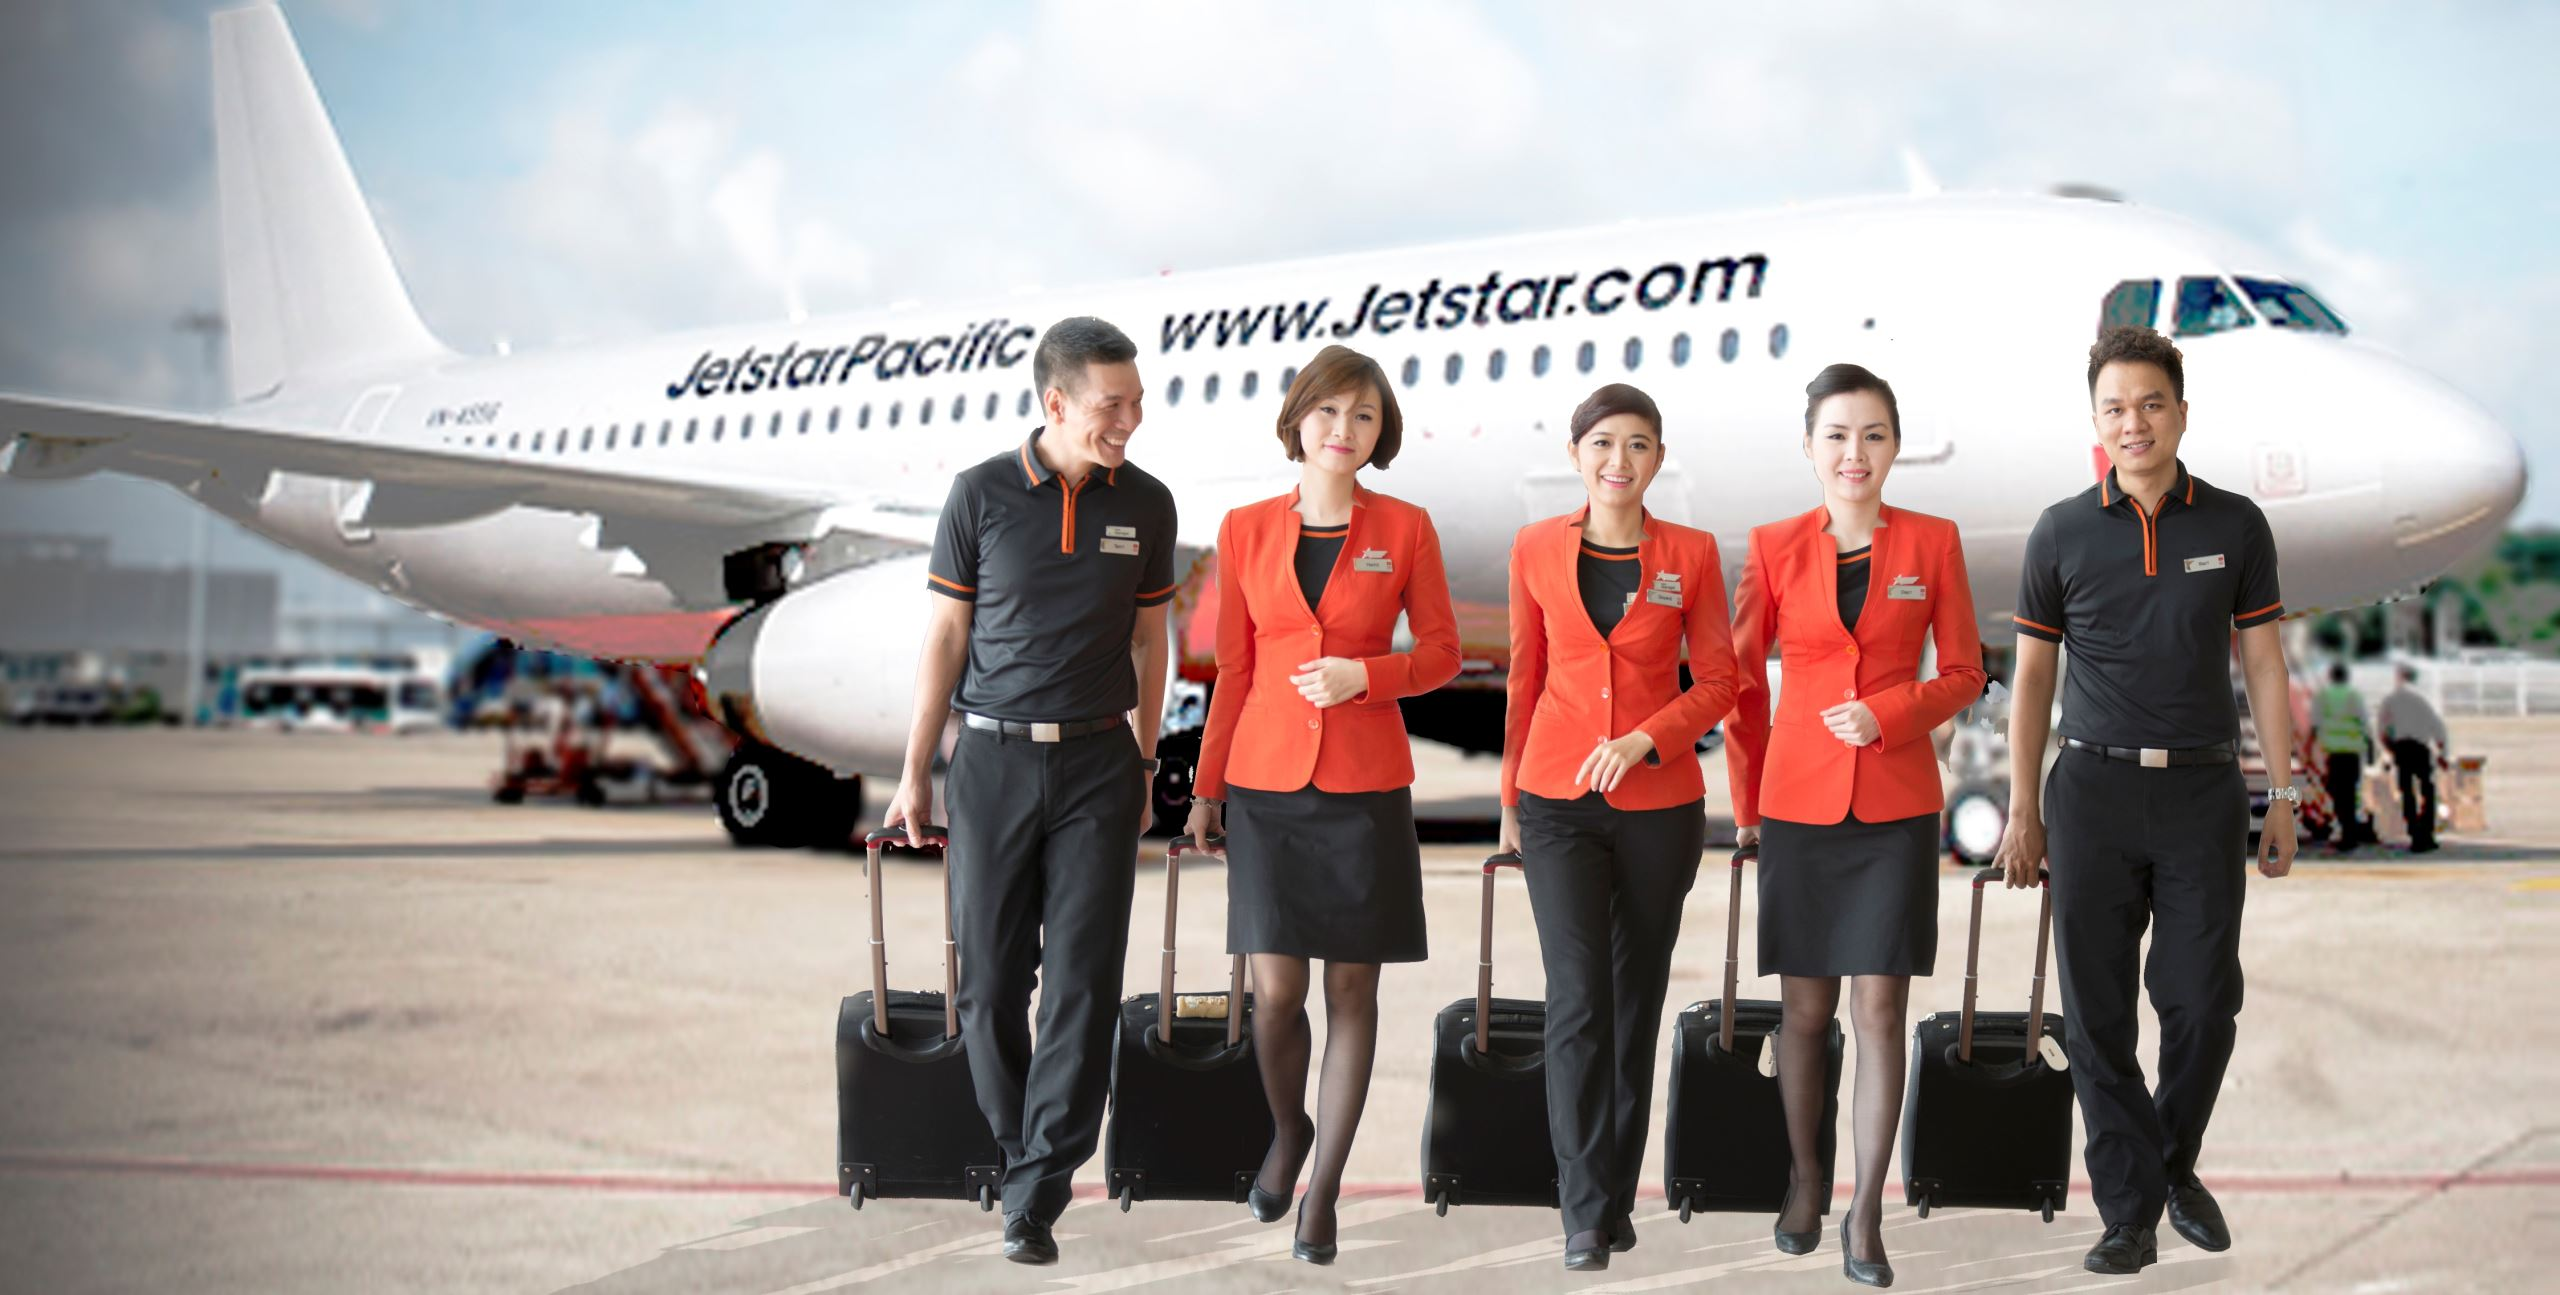 ve-may-bay-tu-hue-di-da-lat-jetstar-pacific